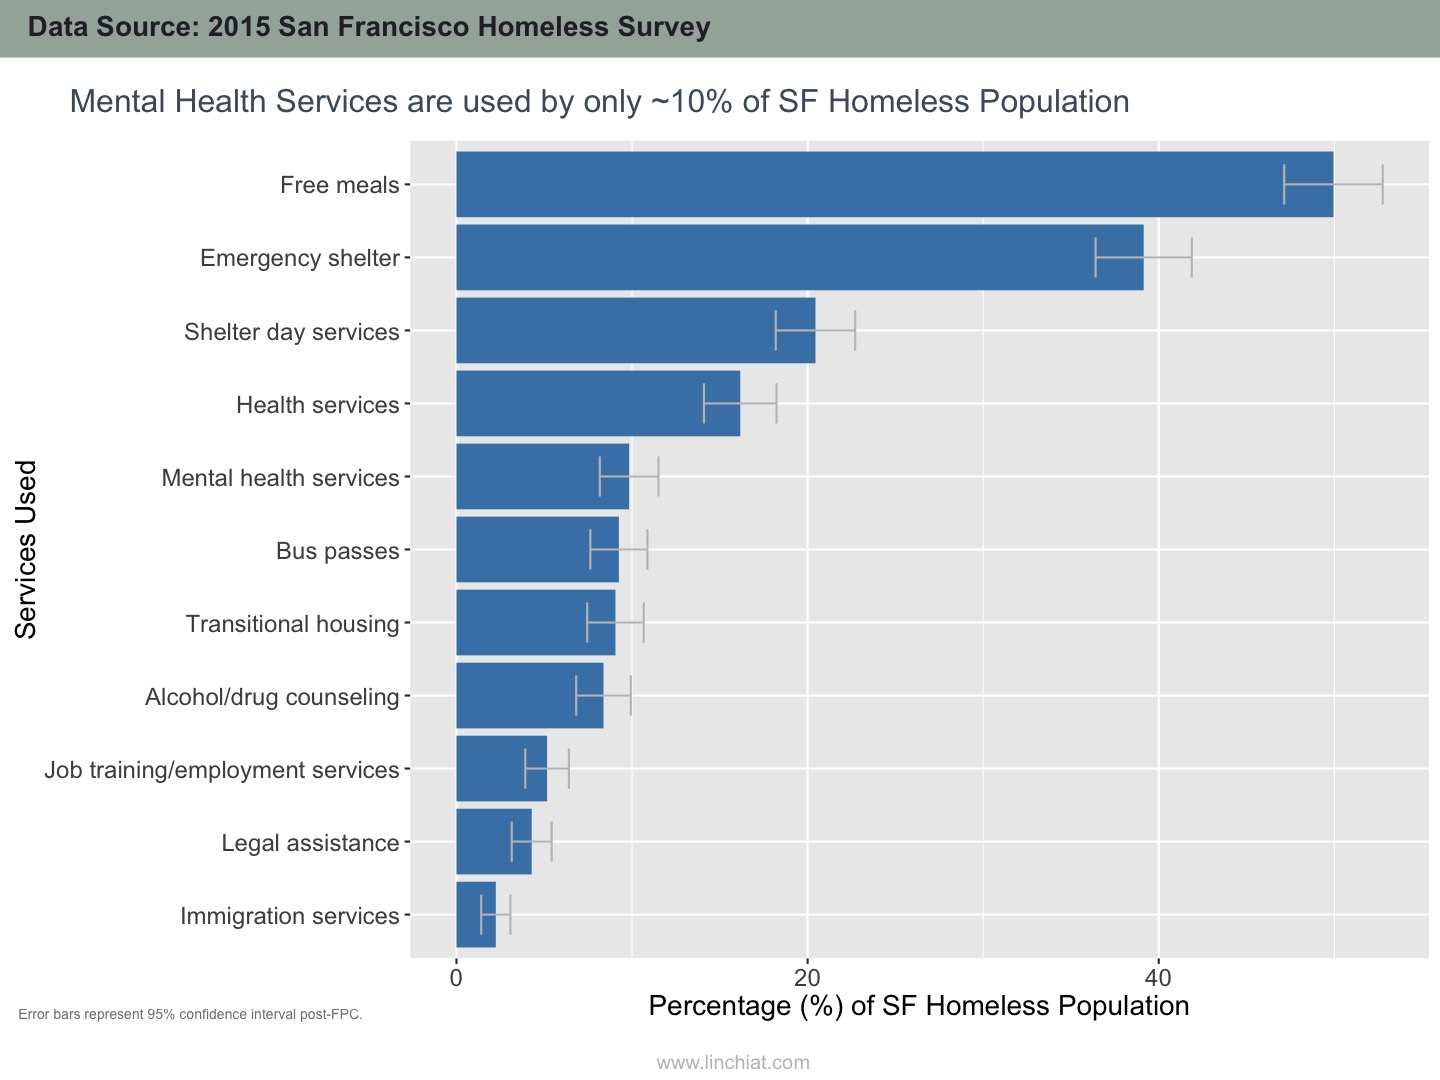 Common services in use by San Francisco Homeless Population